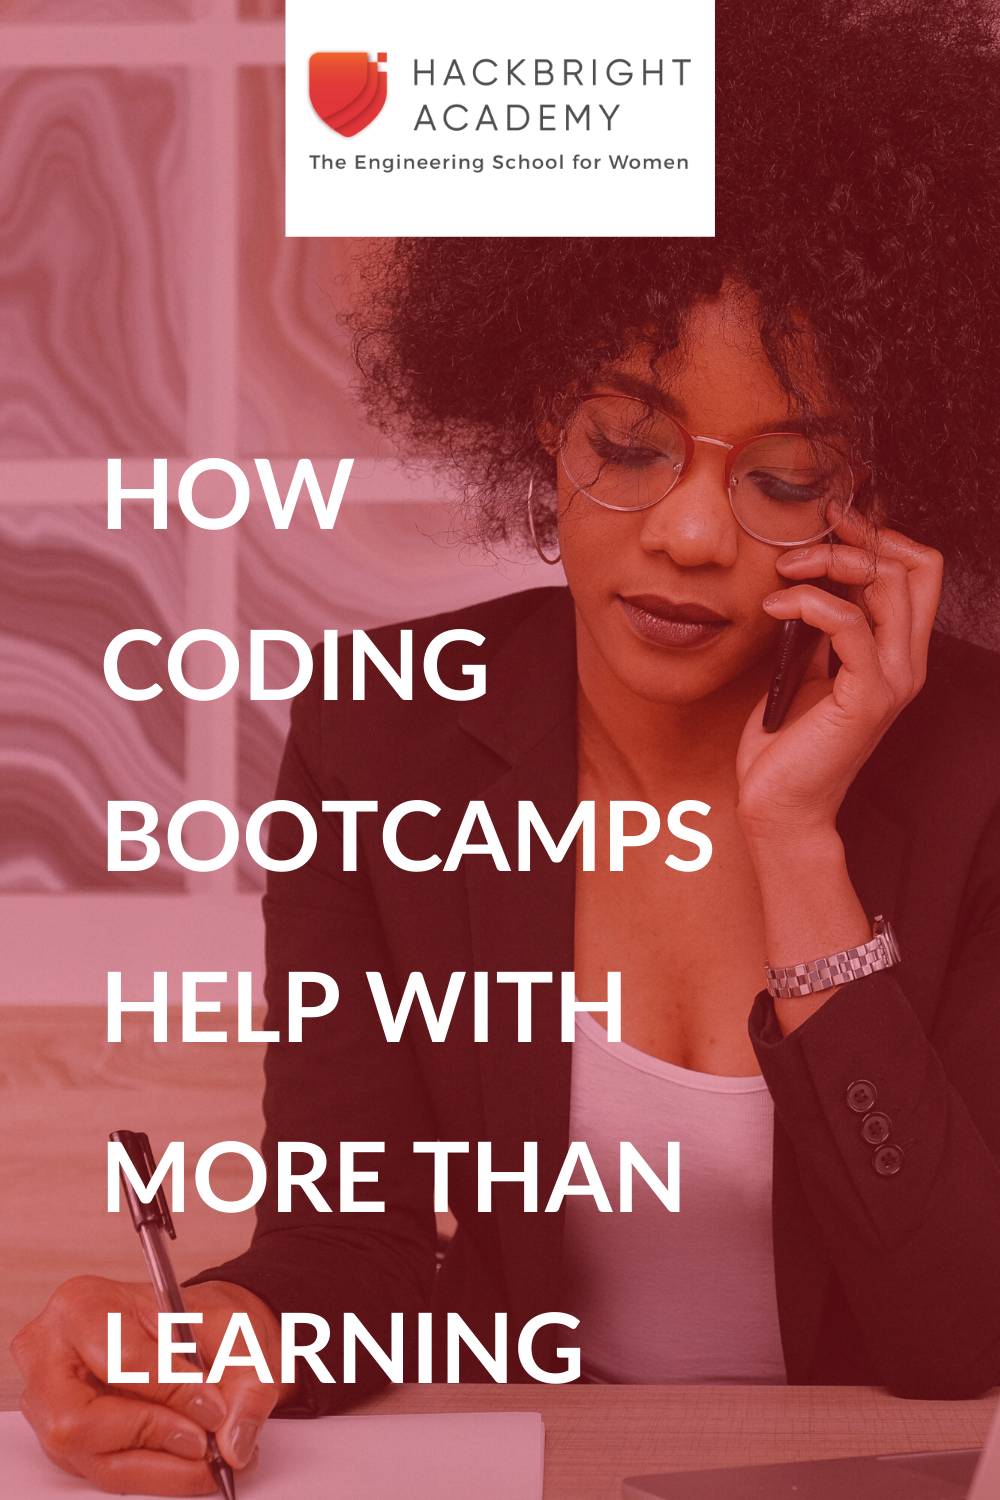 How Coding Bootcamps Help With More Than Learning